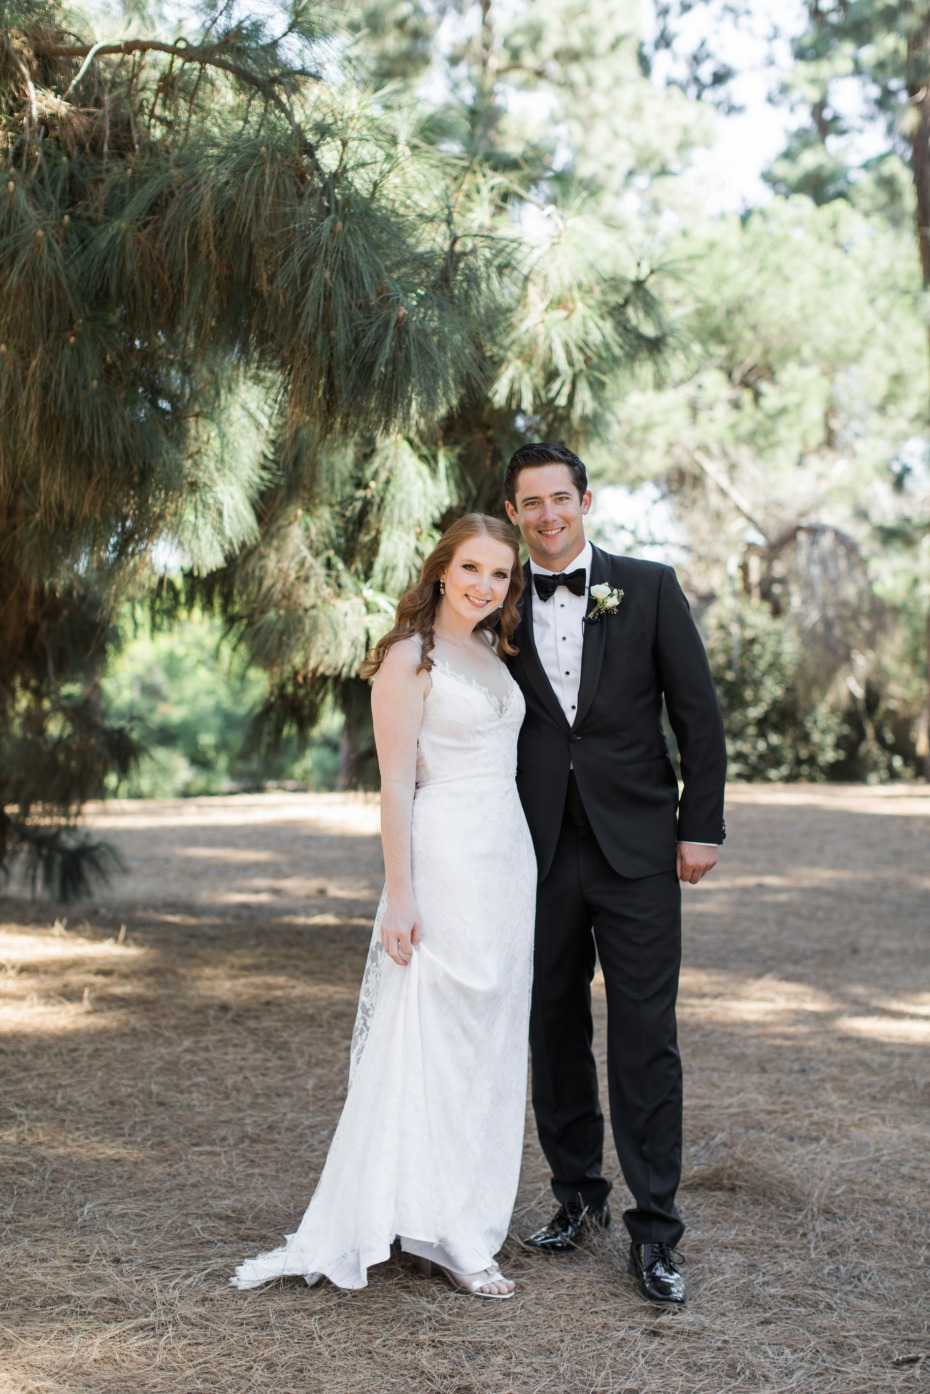 Elegant country club wedding in the heart of LA